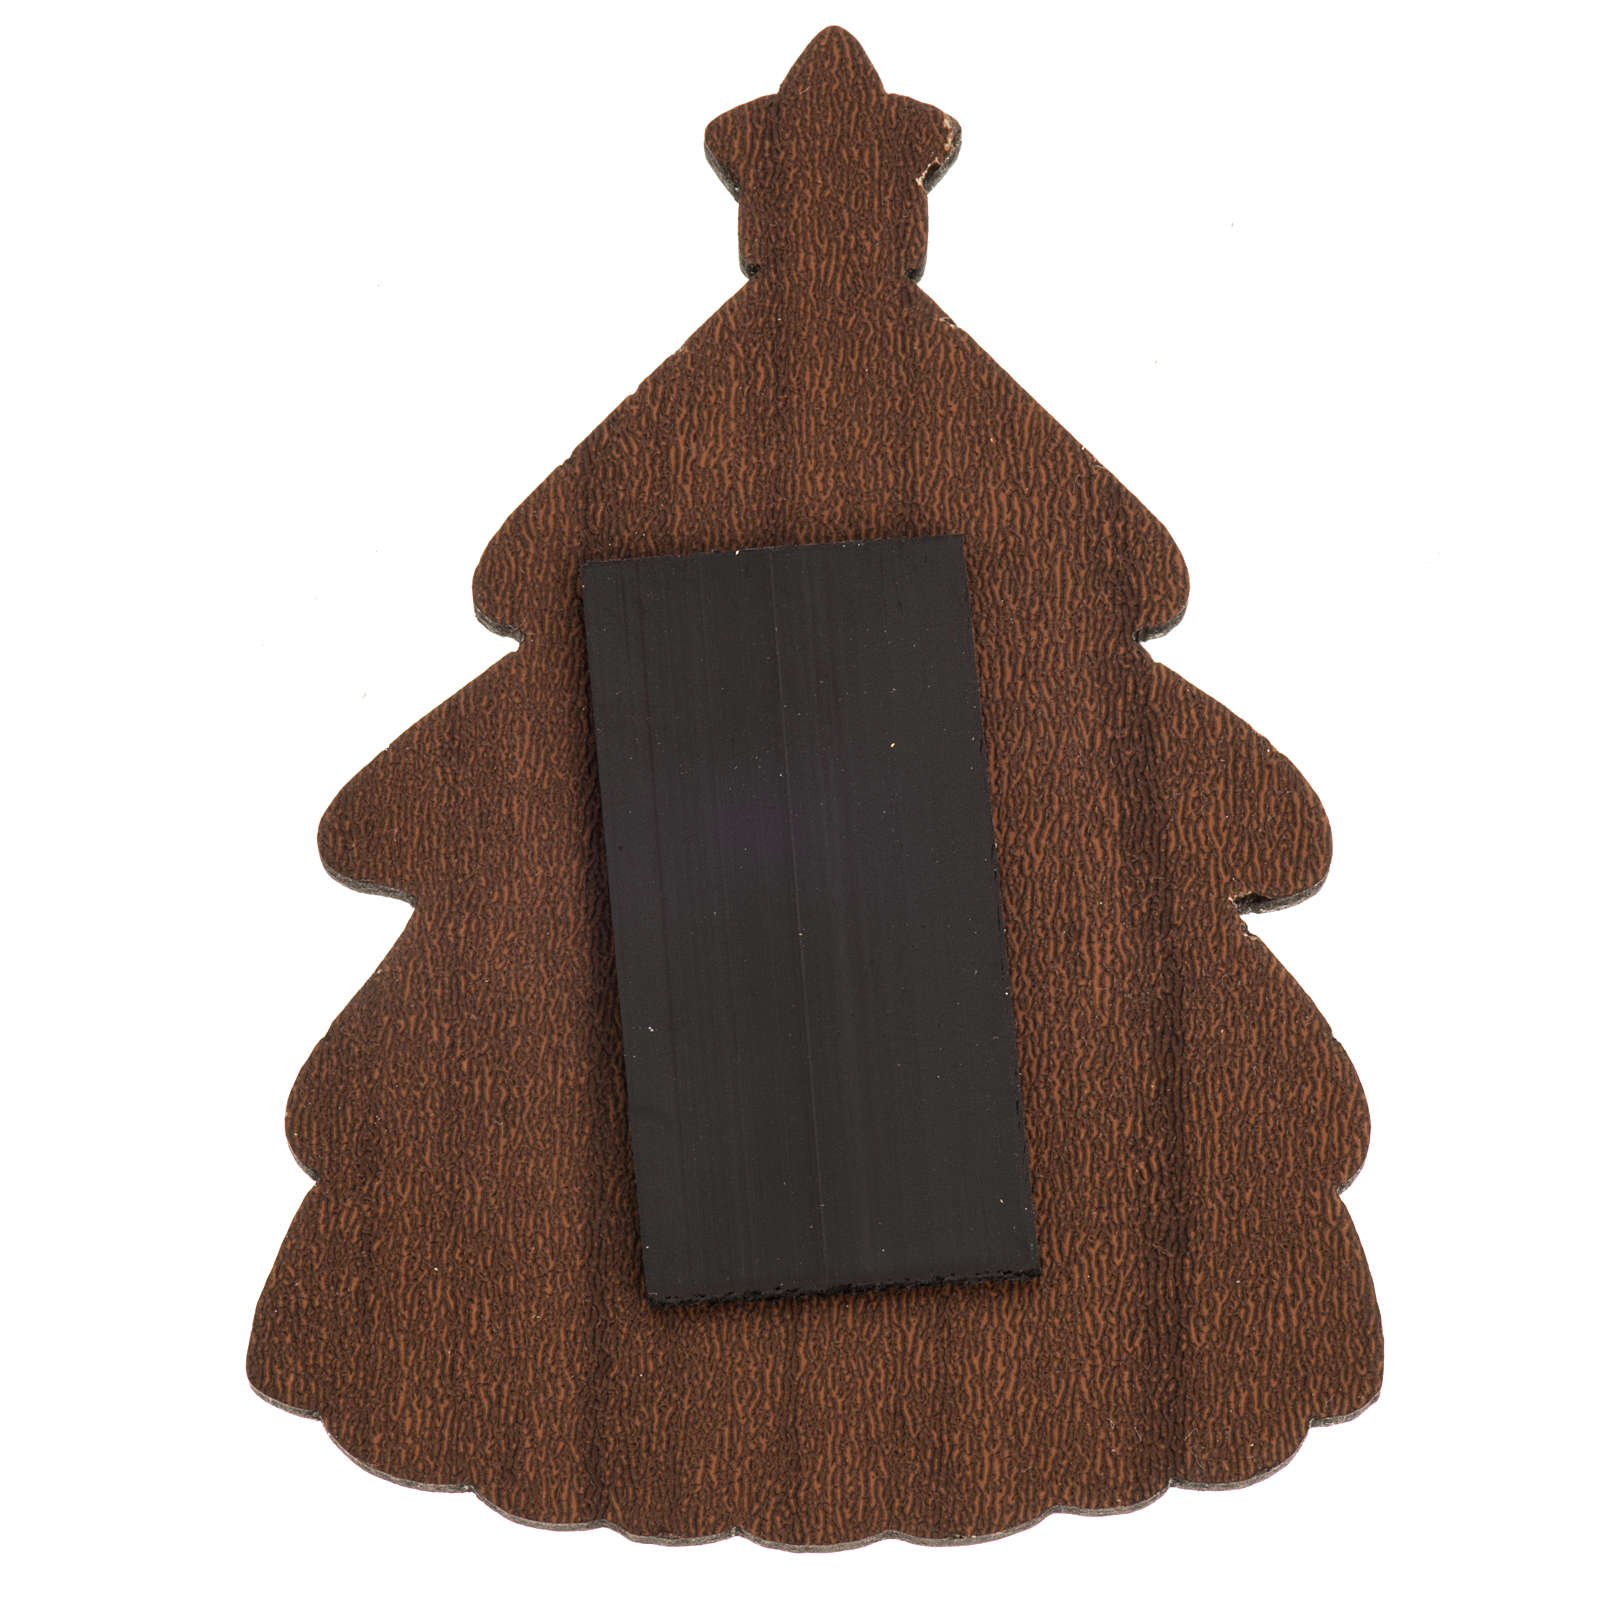 Magnet in wood, pine shaped with Nativity scene 3